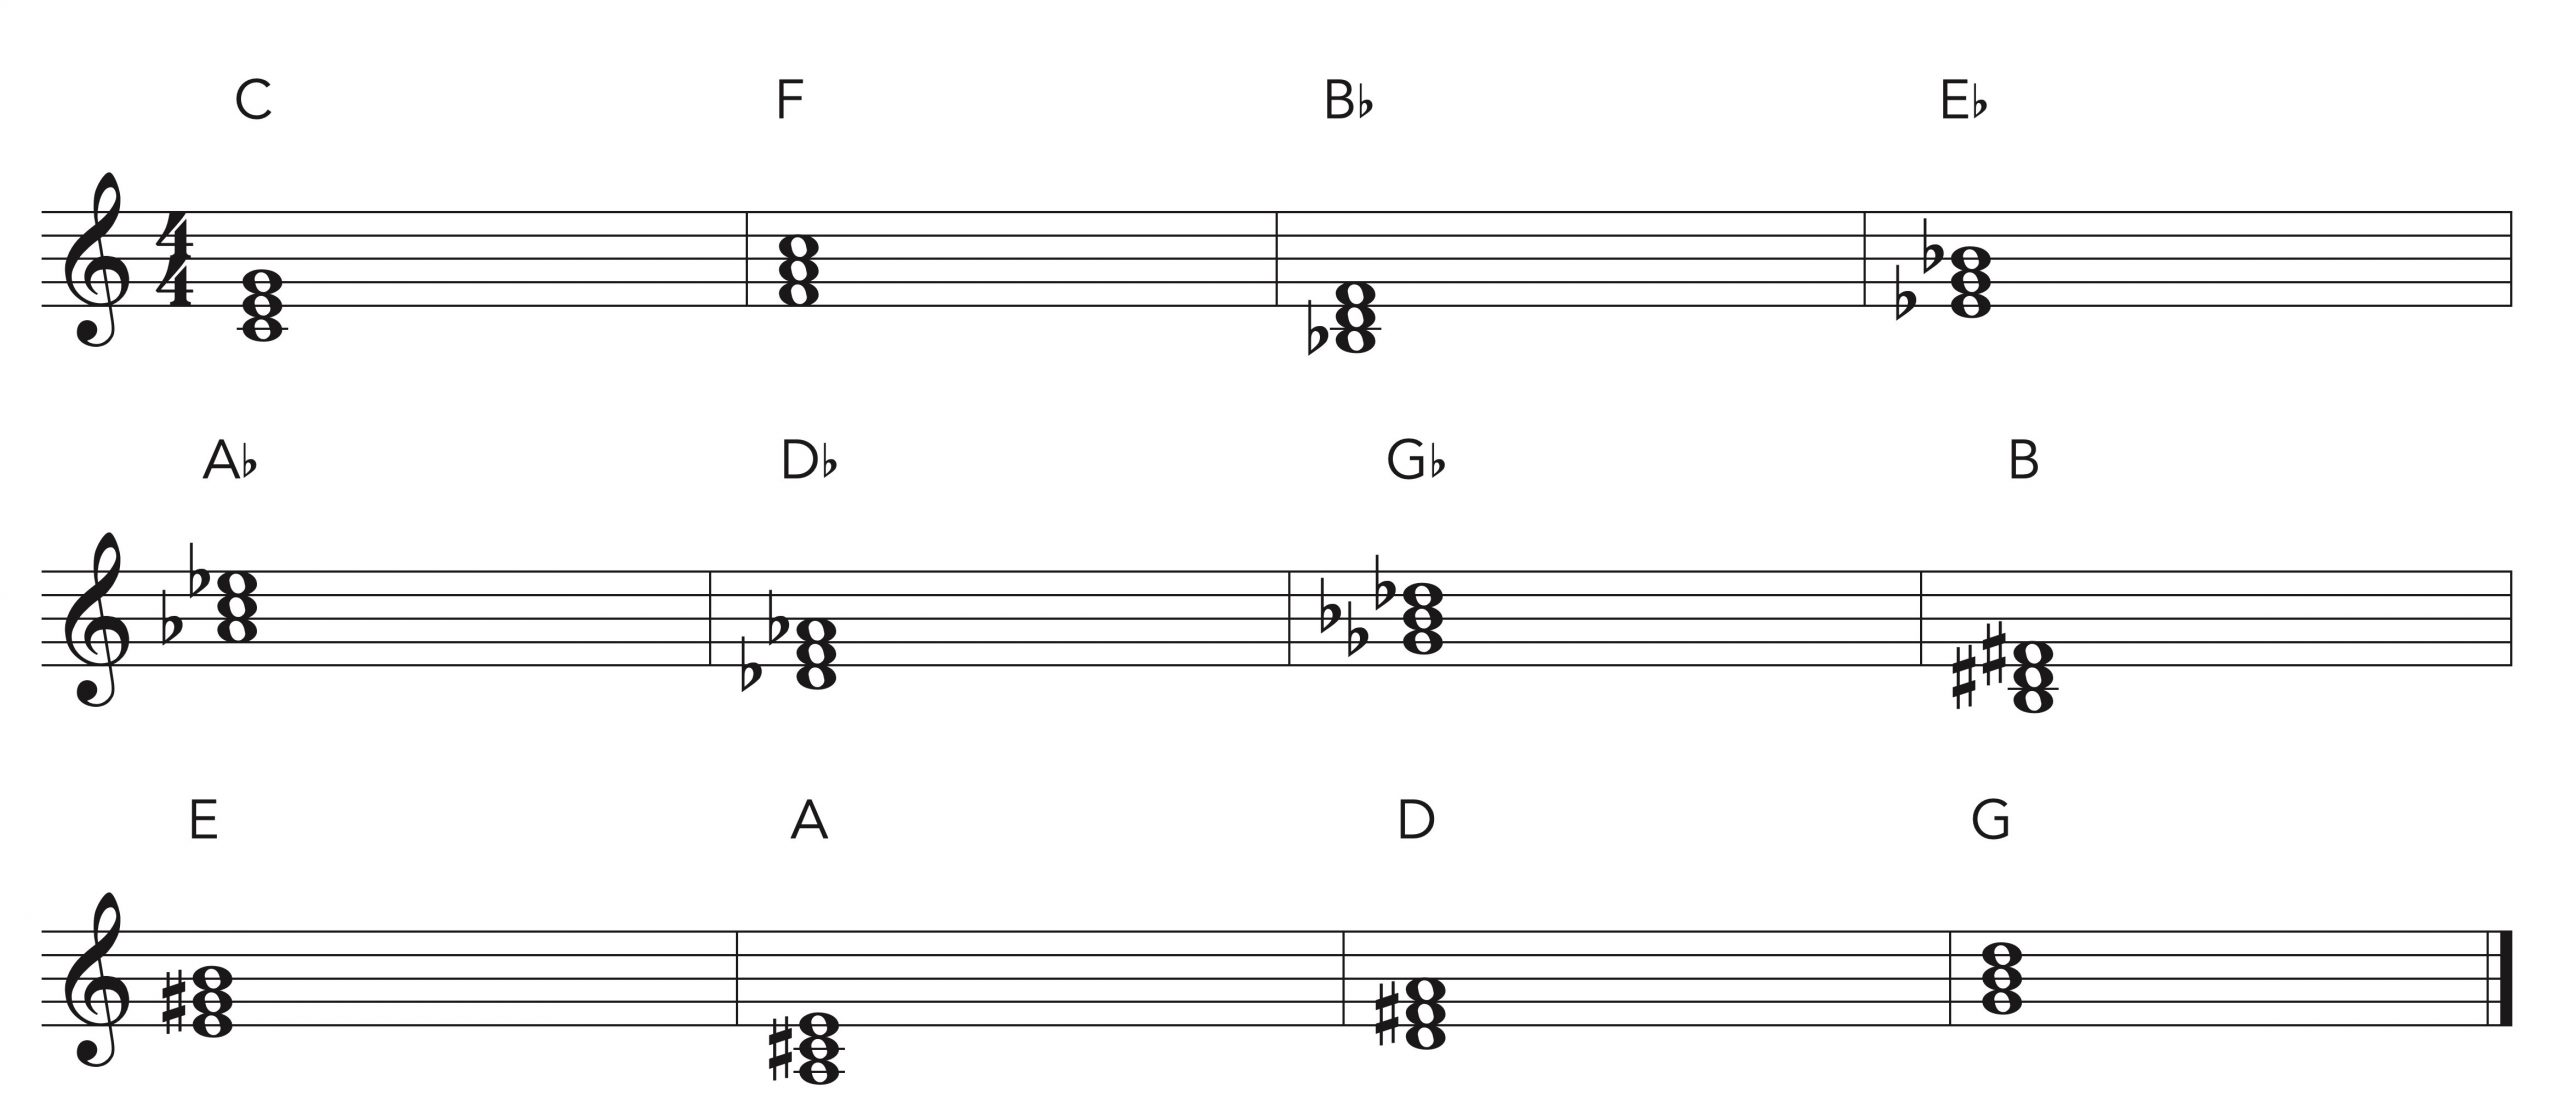 Major chord piano practice in music notation